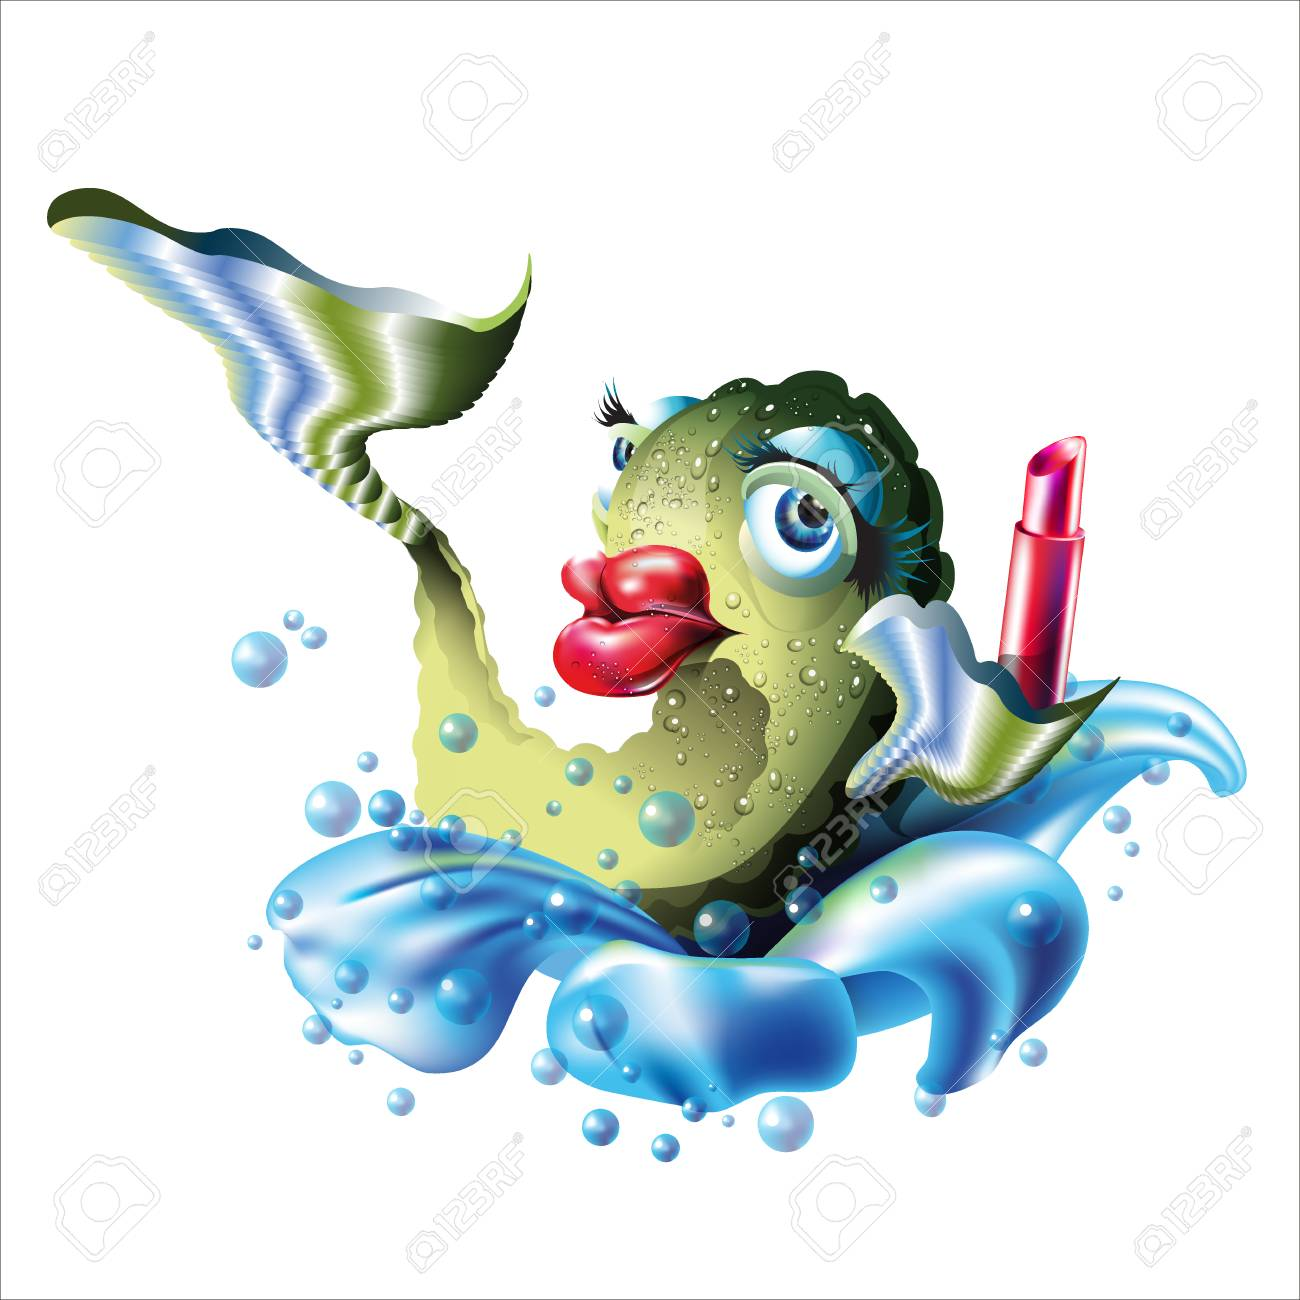 Fish And Lipstick Big Red Lips Illustration Isolated On White